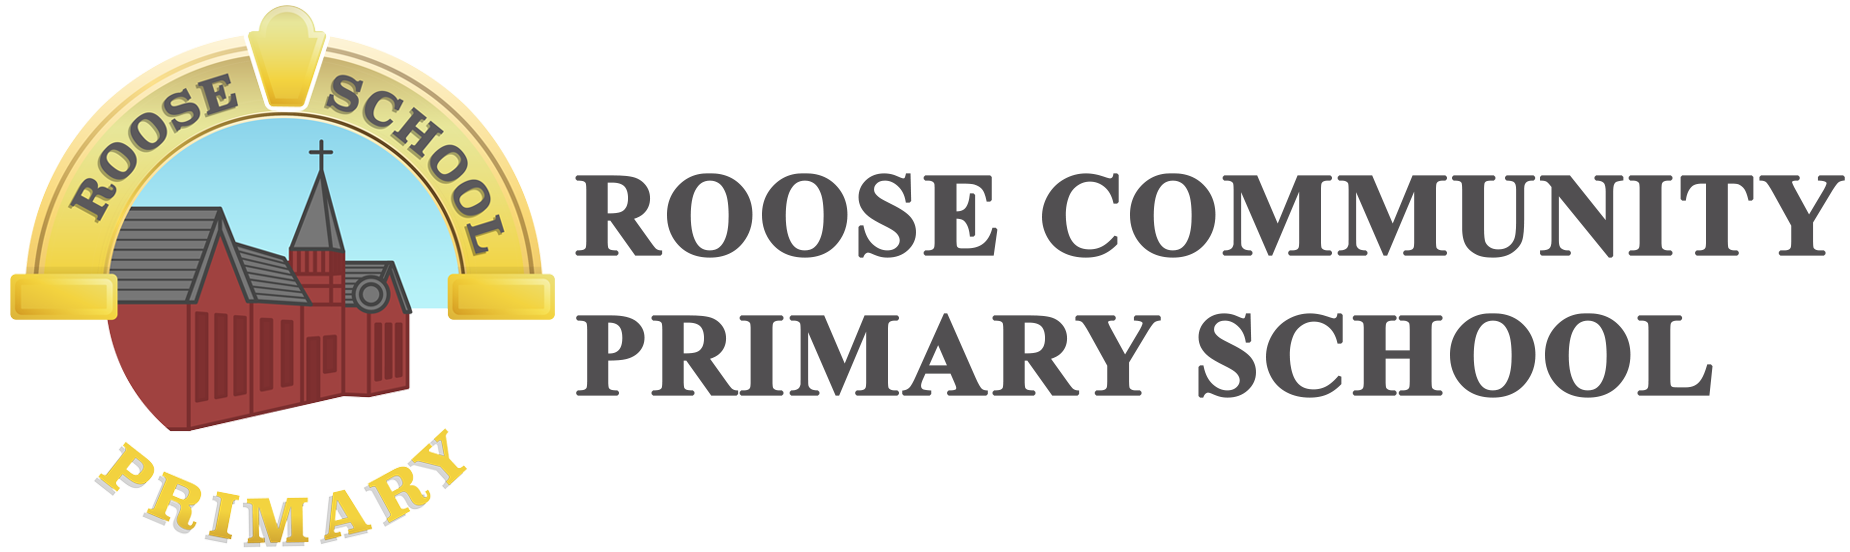 Roose Community Primary School